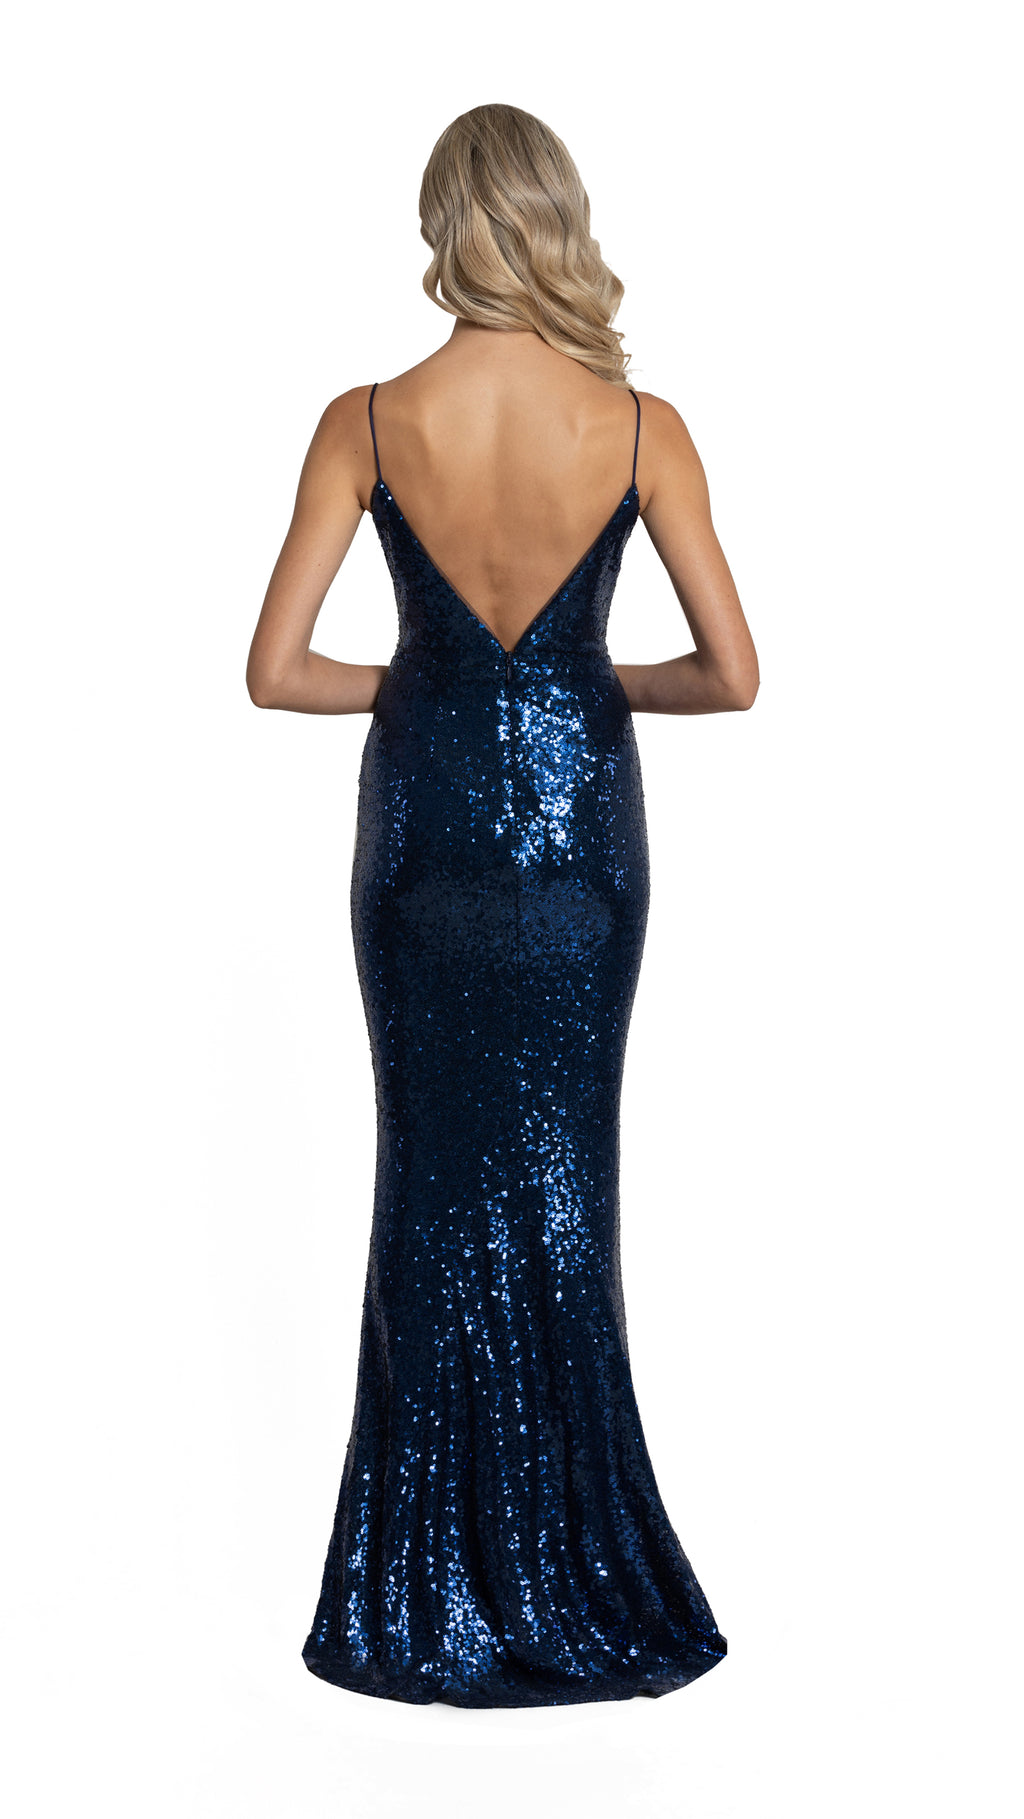 Megan Plunge V Neck Gown with low back  in indigo